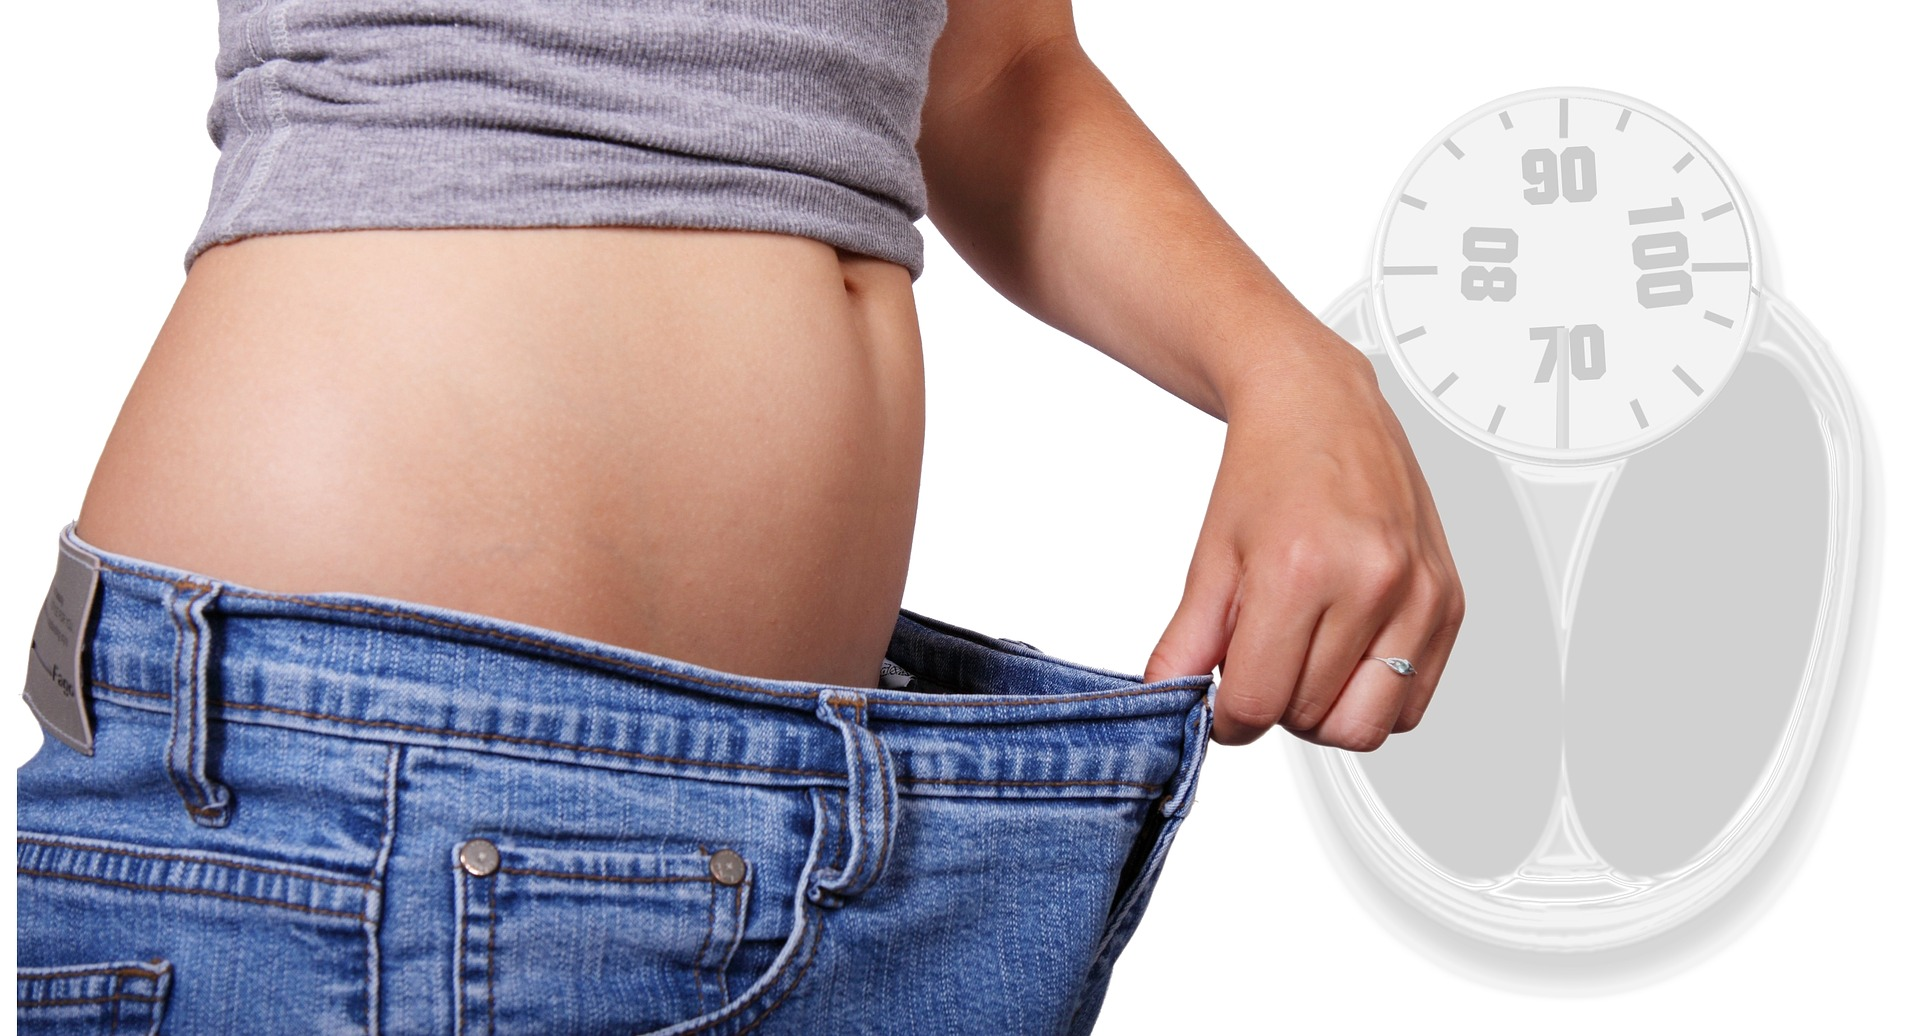 Six Steps to Weight Loss w/o Dieting or Exercising